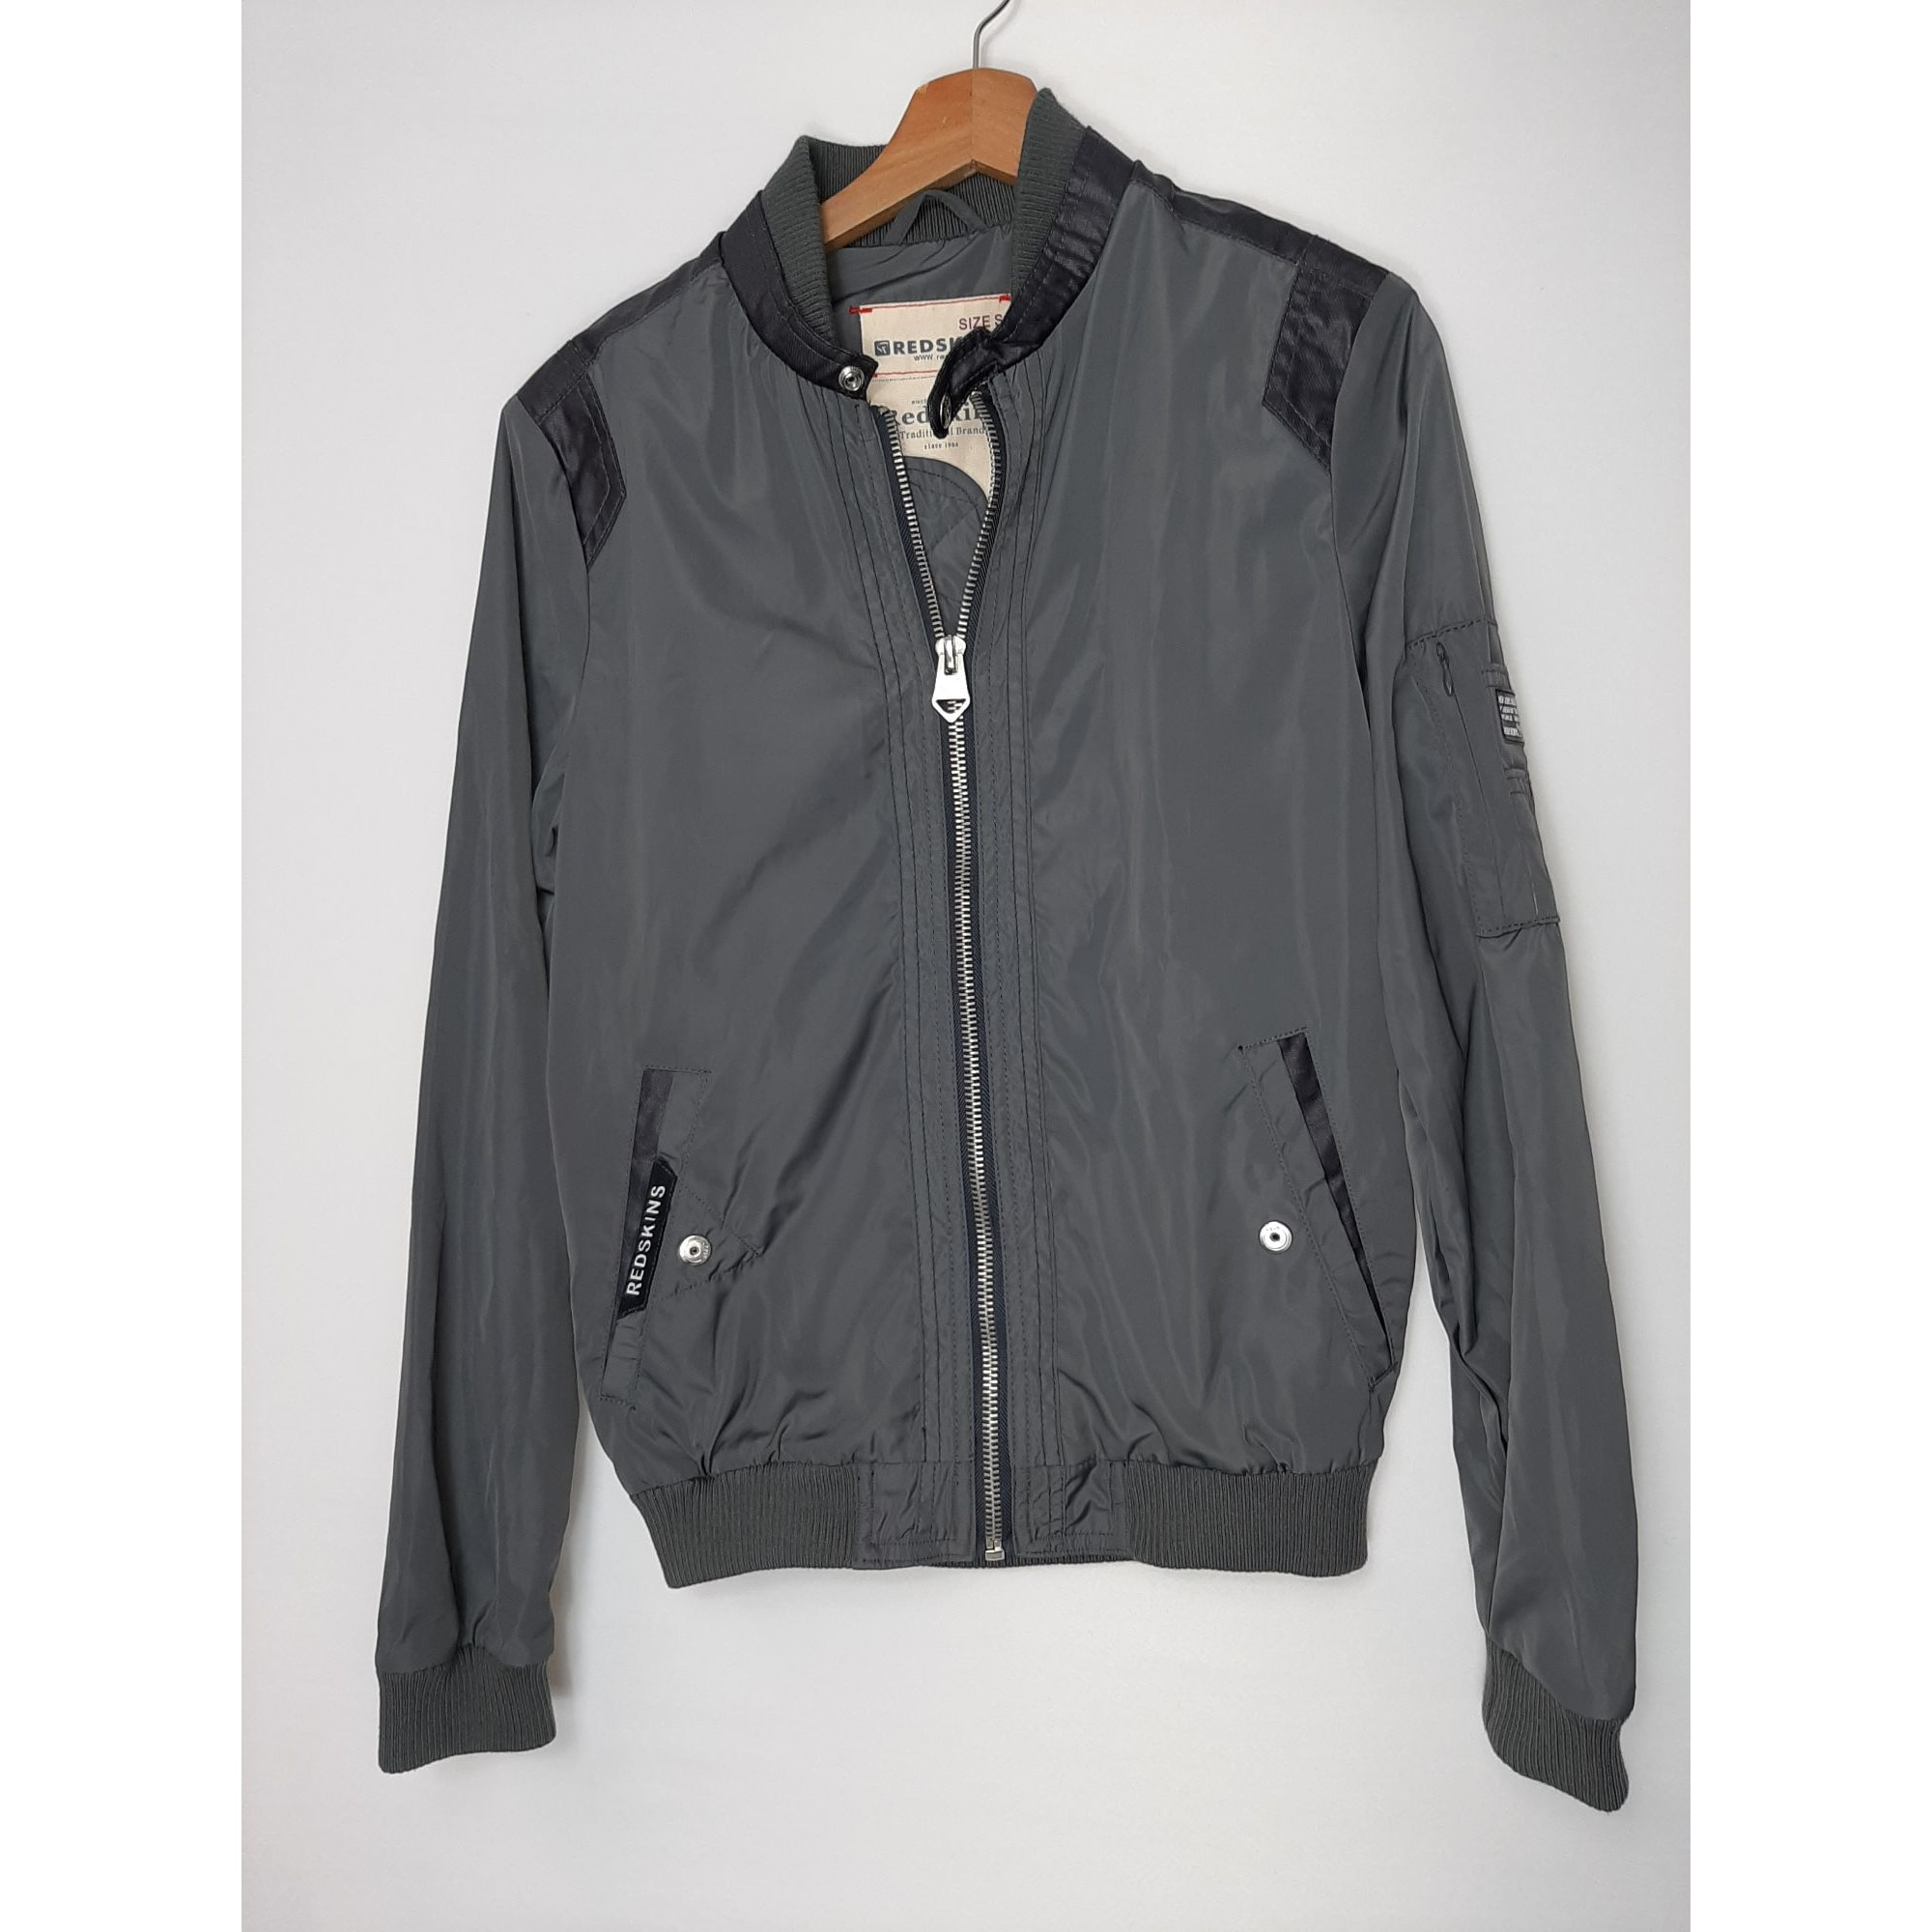 Veste REDSKINS Gris, anthracite